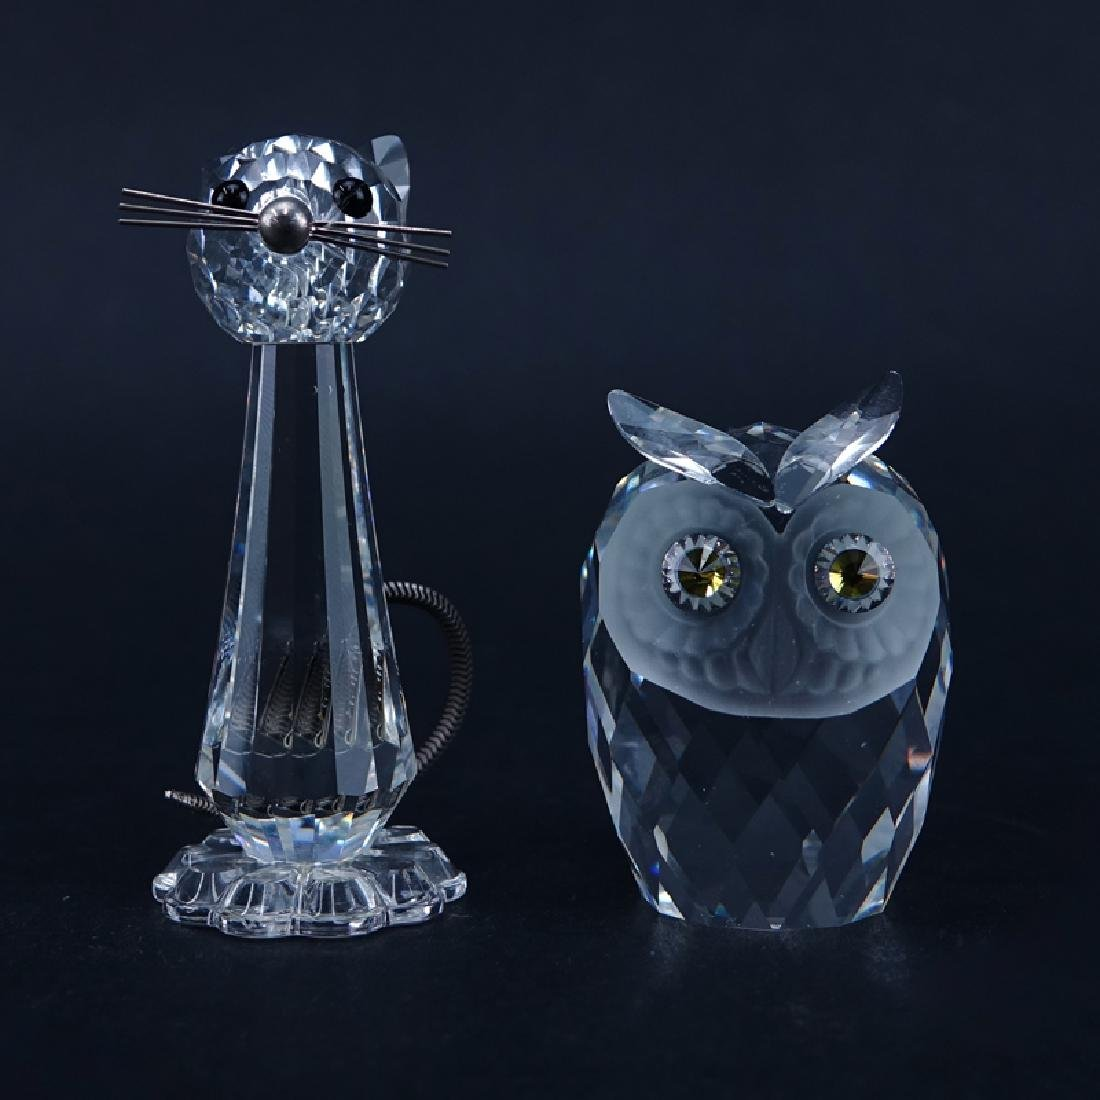 Two (2) Swarovski Crystal Animal Figurines in Original